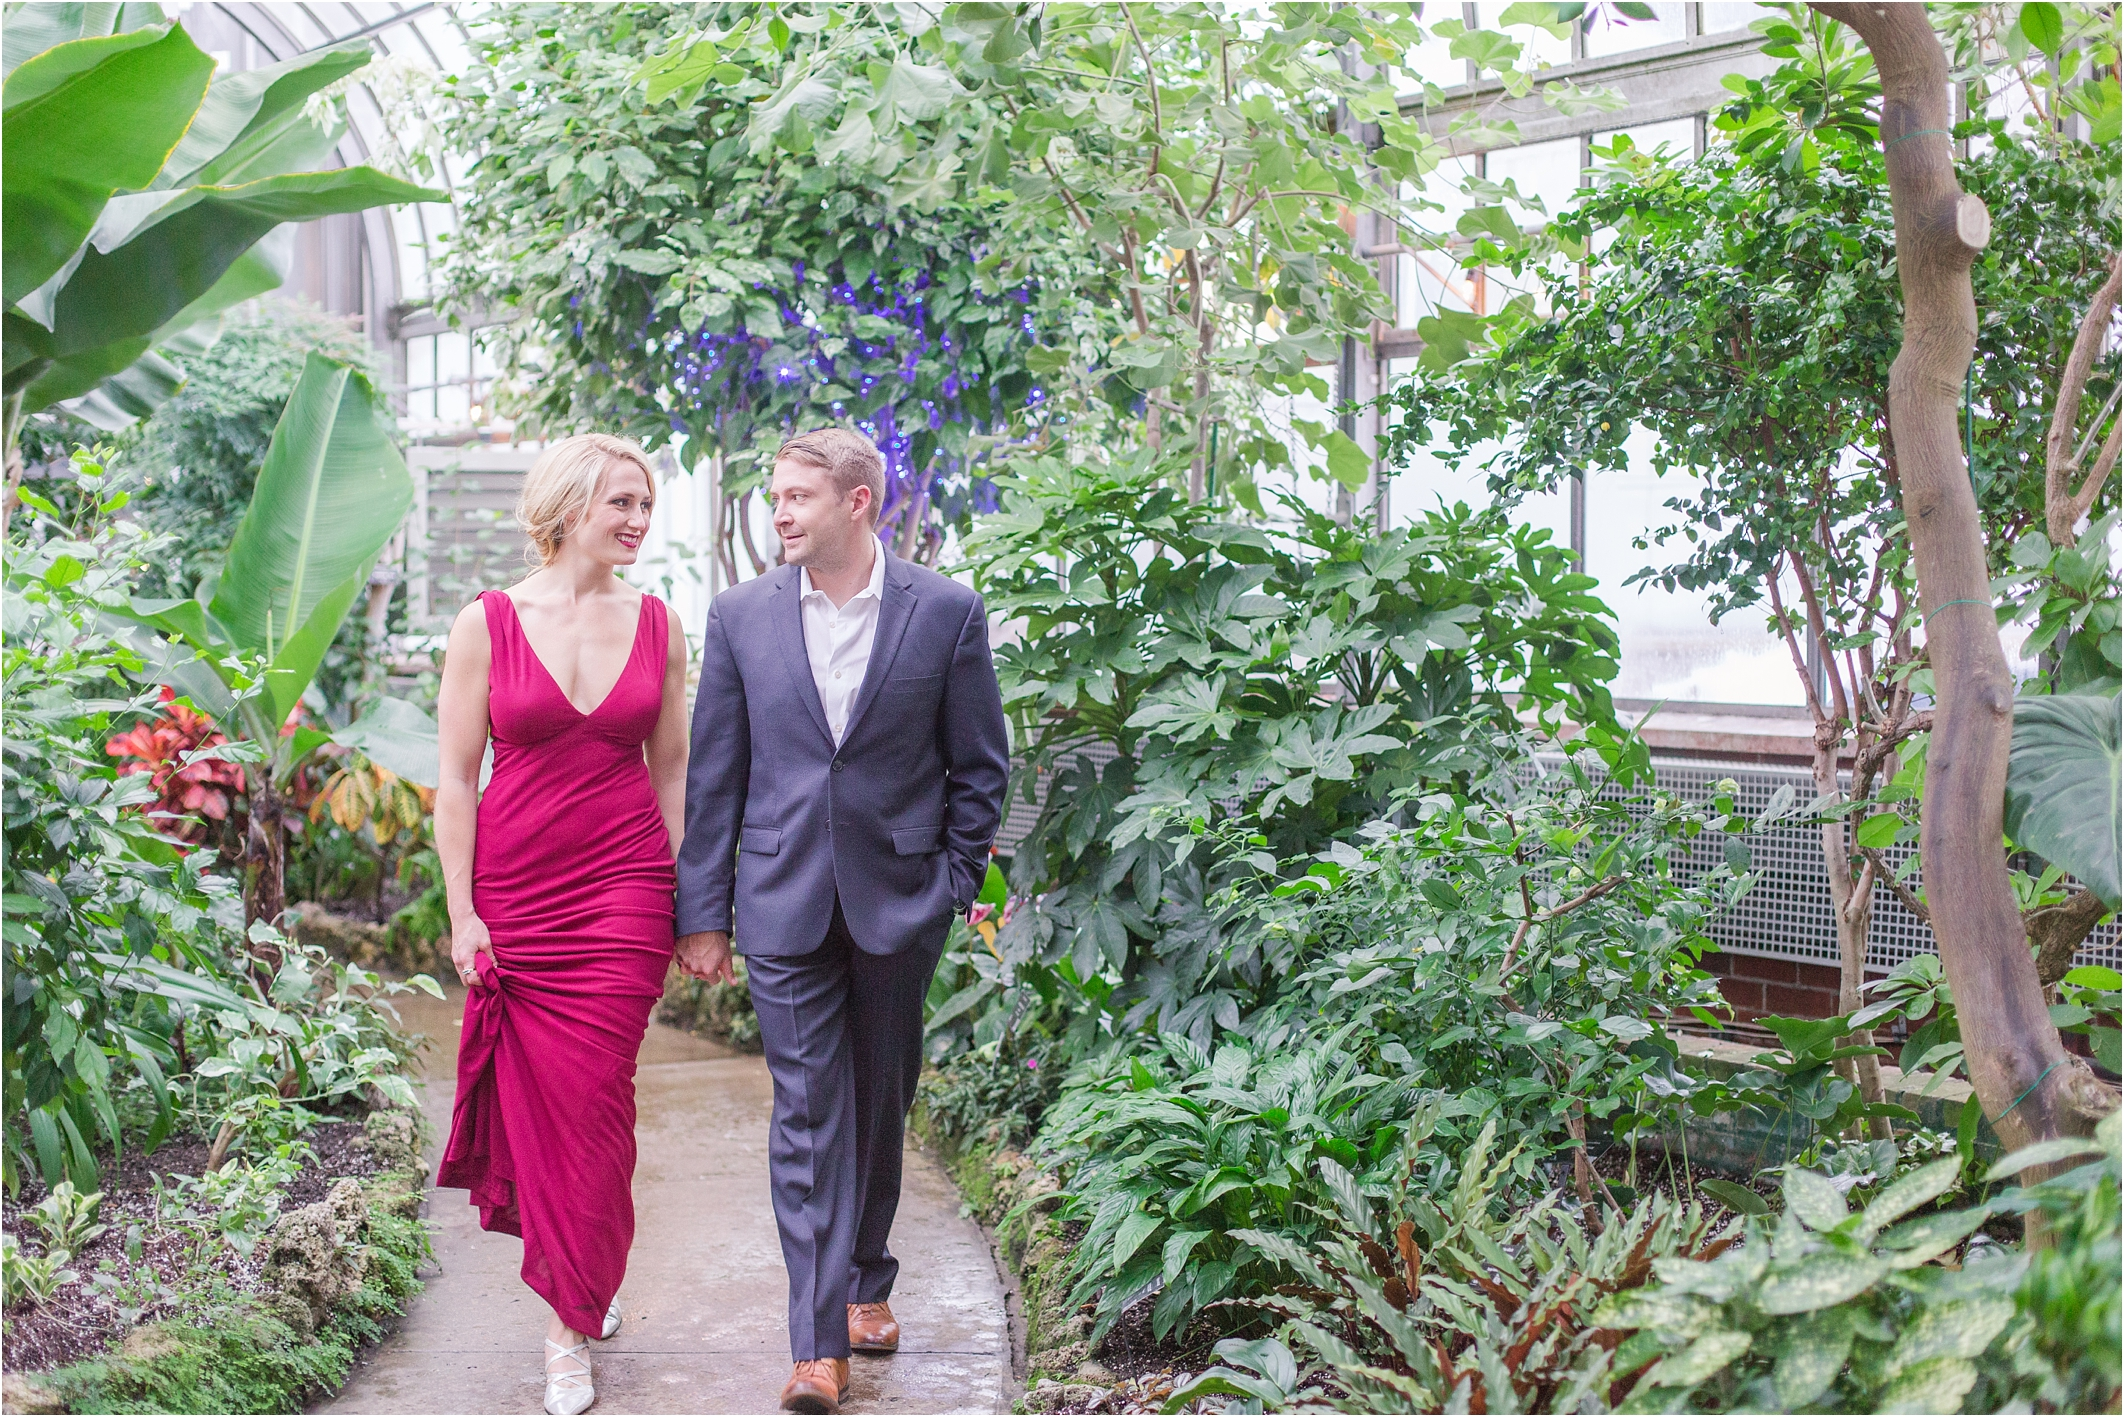 elegant-classic-belle-isle-conservatory-engagement-photos-in-detroit-mi-by-courtney-carolyn-photography_0001.jpg